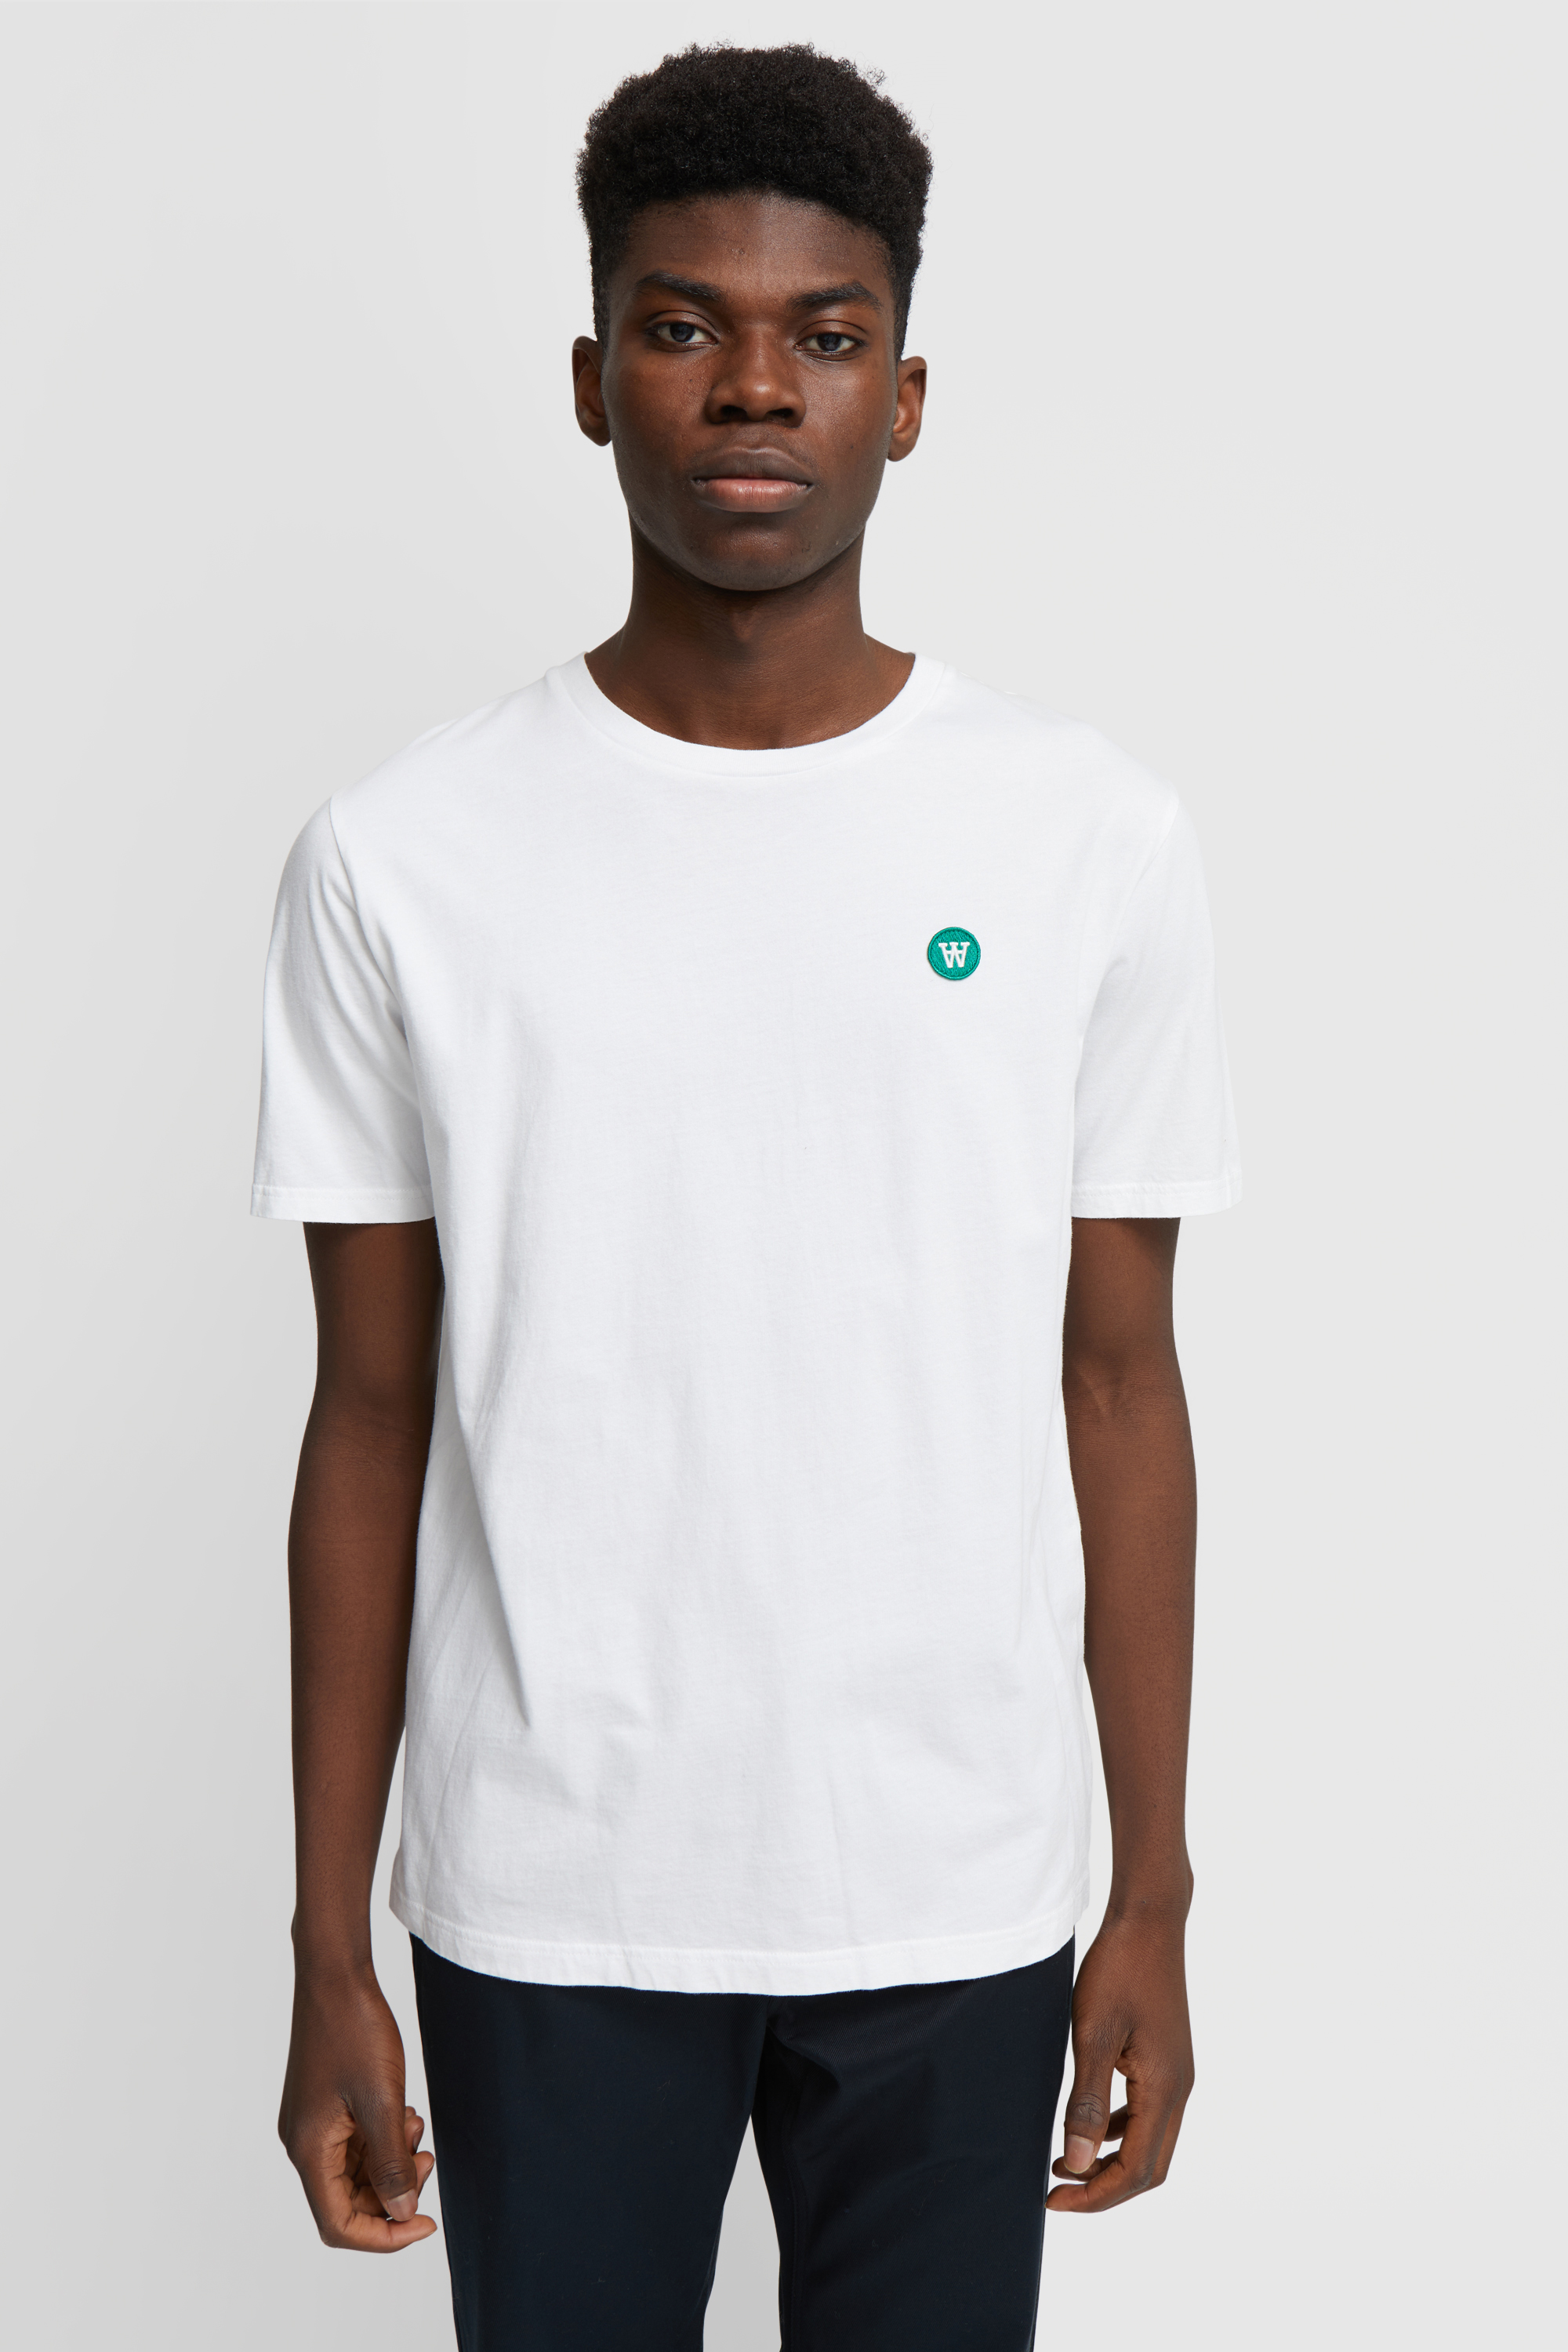 Wood Wood Double A Ace T-shirt, bright white, small